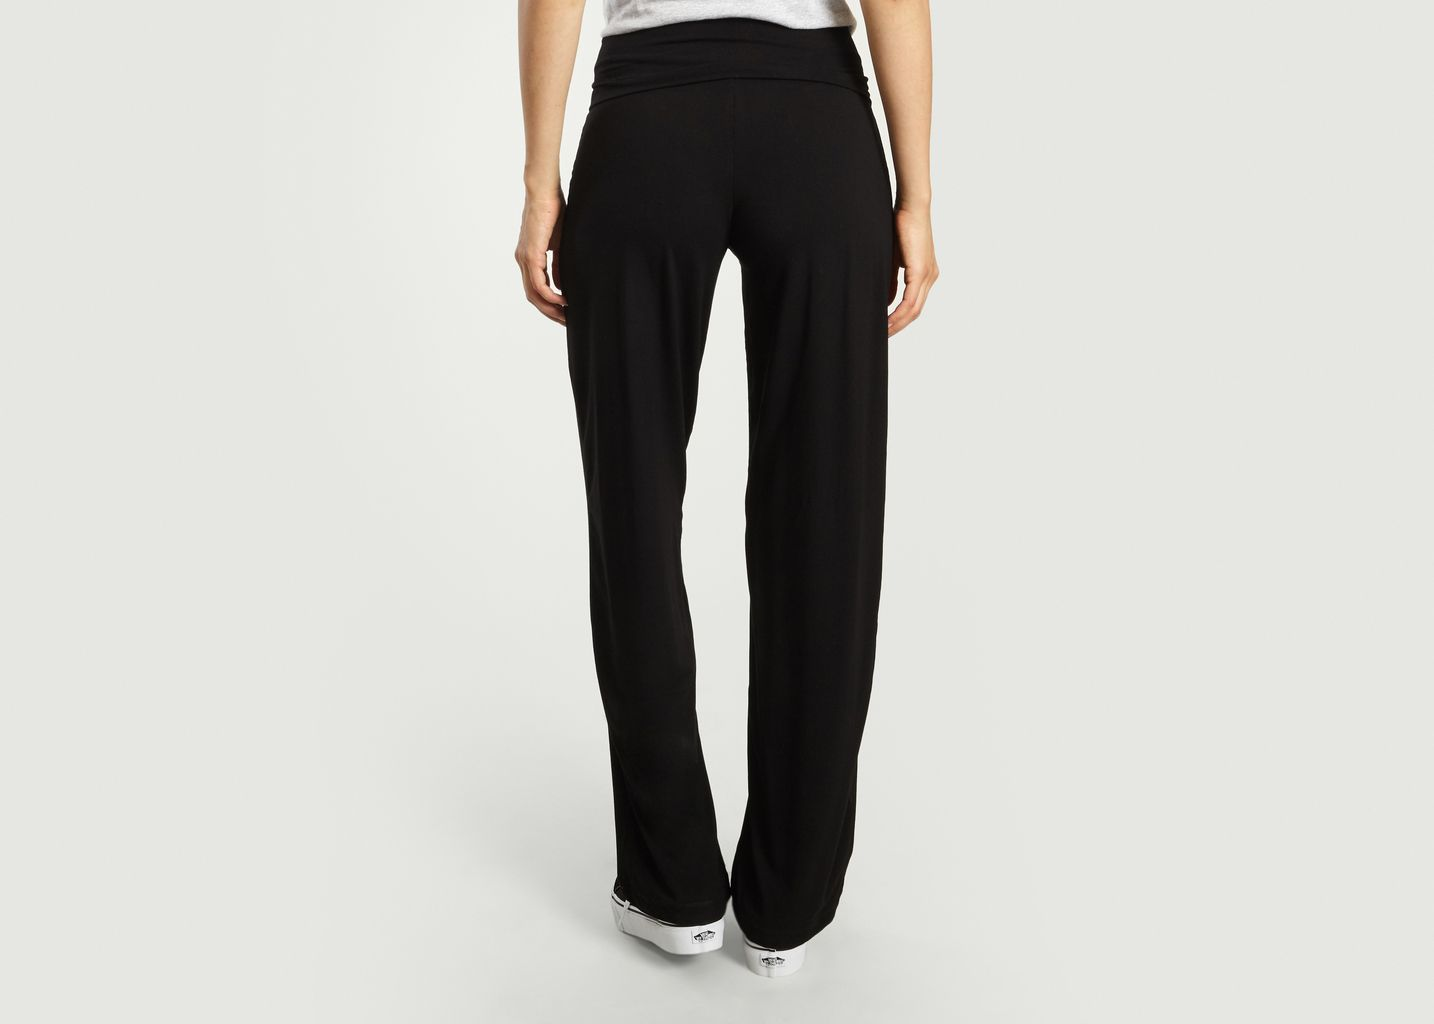 Pantalon Jazz - Repetto